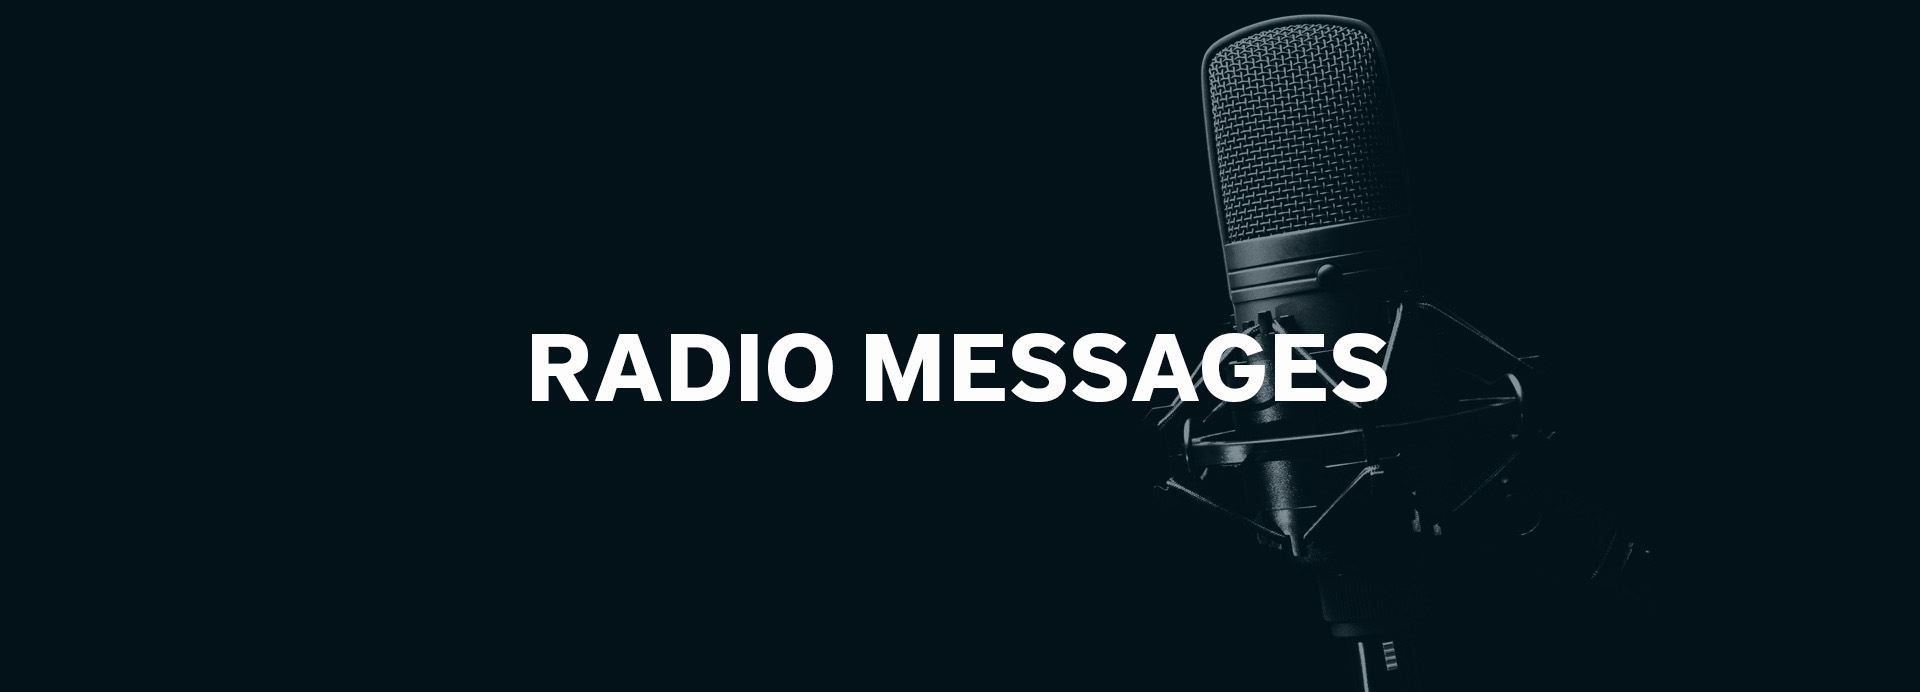 Radio Messages